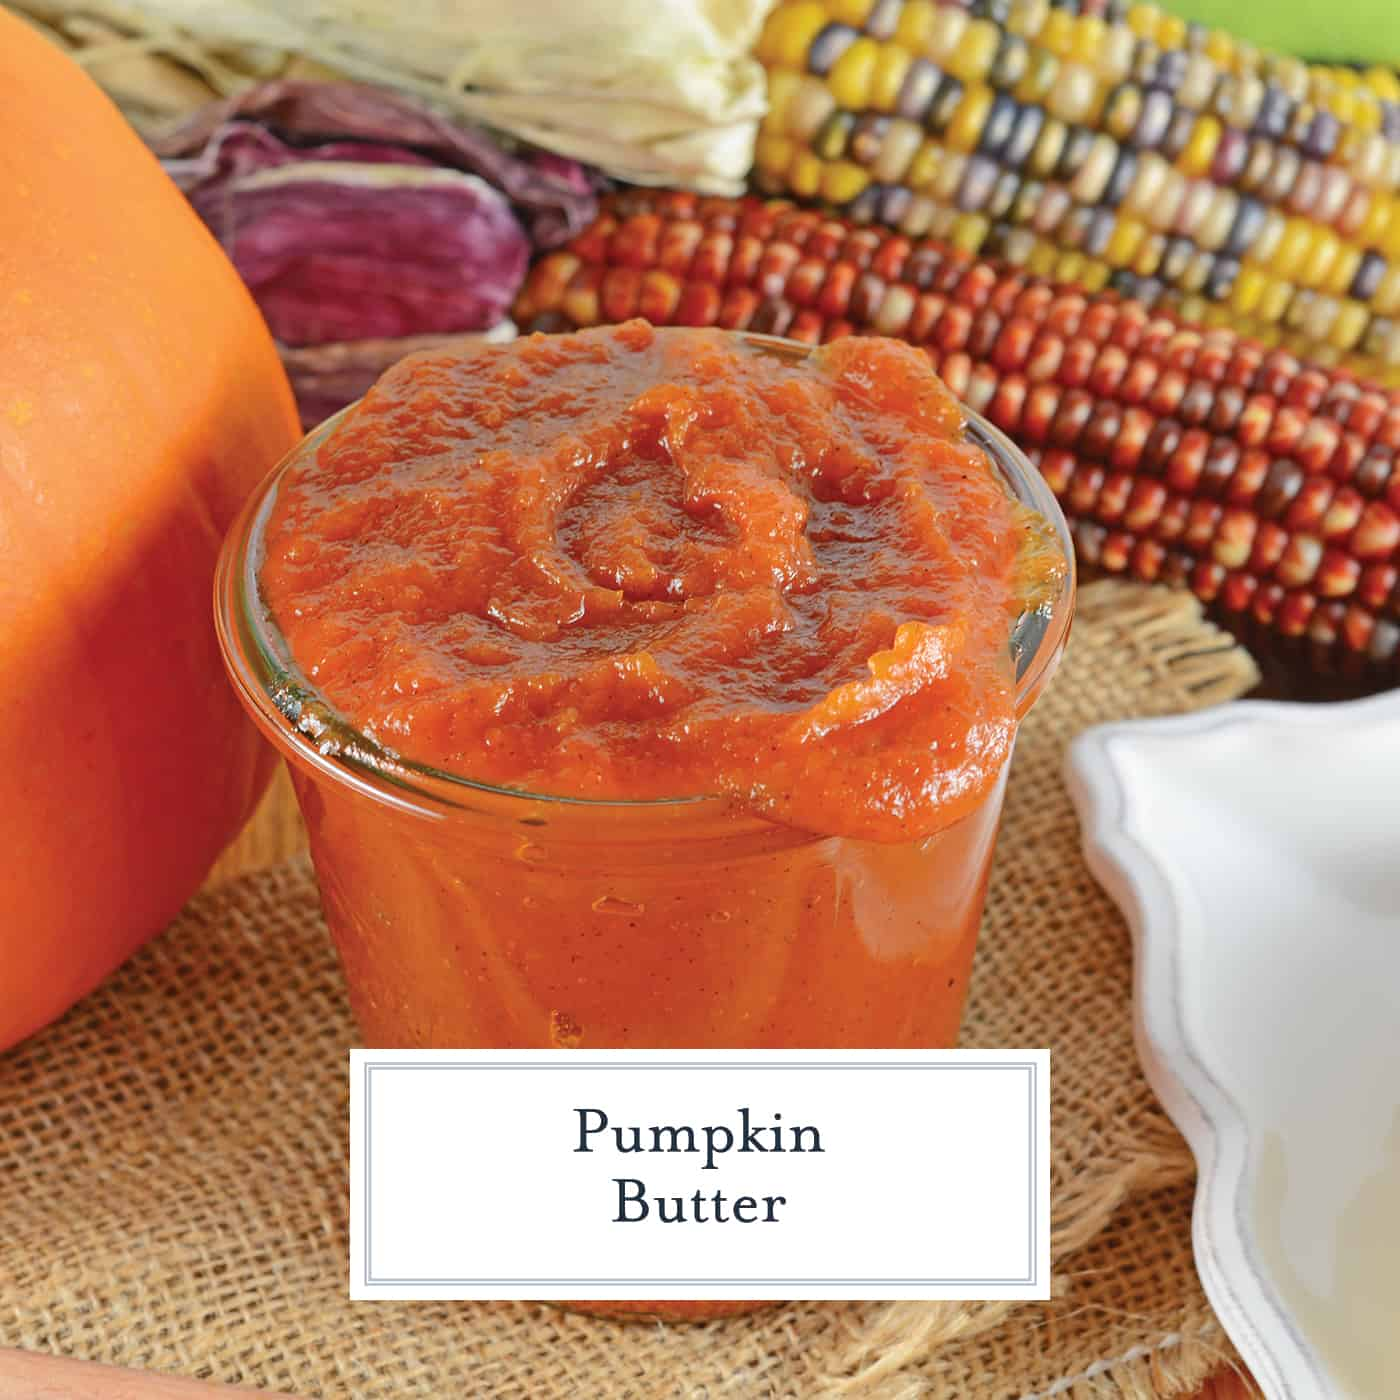 Pumpkin Butter is an easy spread that can be used on everything from pancakes to dinner rolls and everything between! Make extra to give as gifts. #pumpkinbutterrecipe #pumpkinbutteruses www.savoryexperiments.com